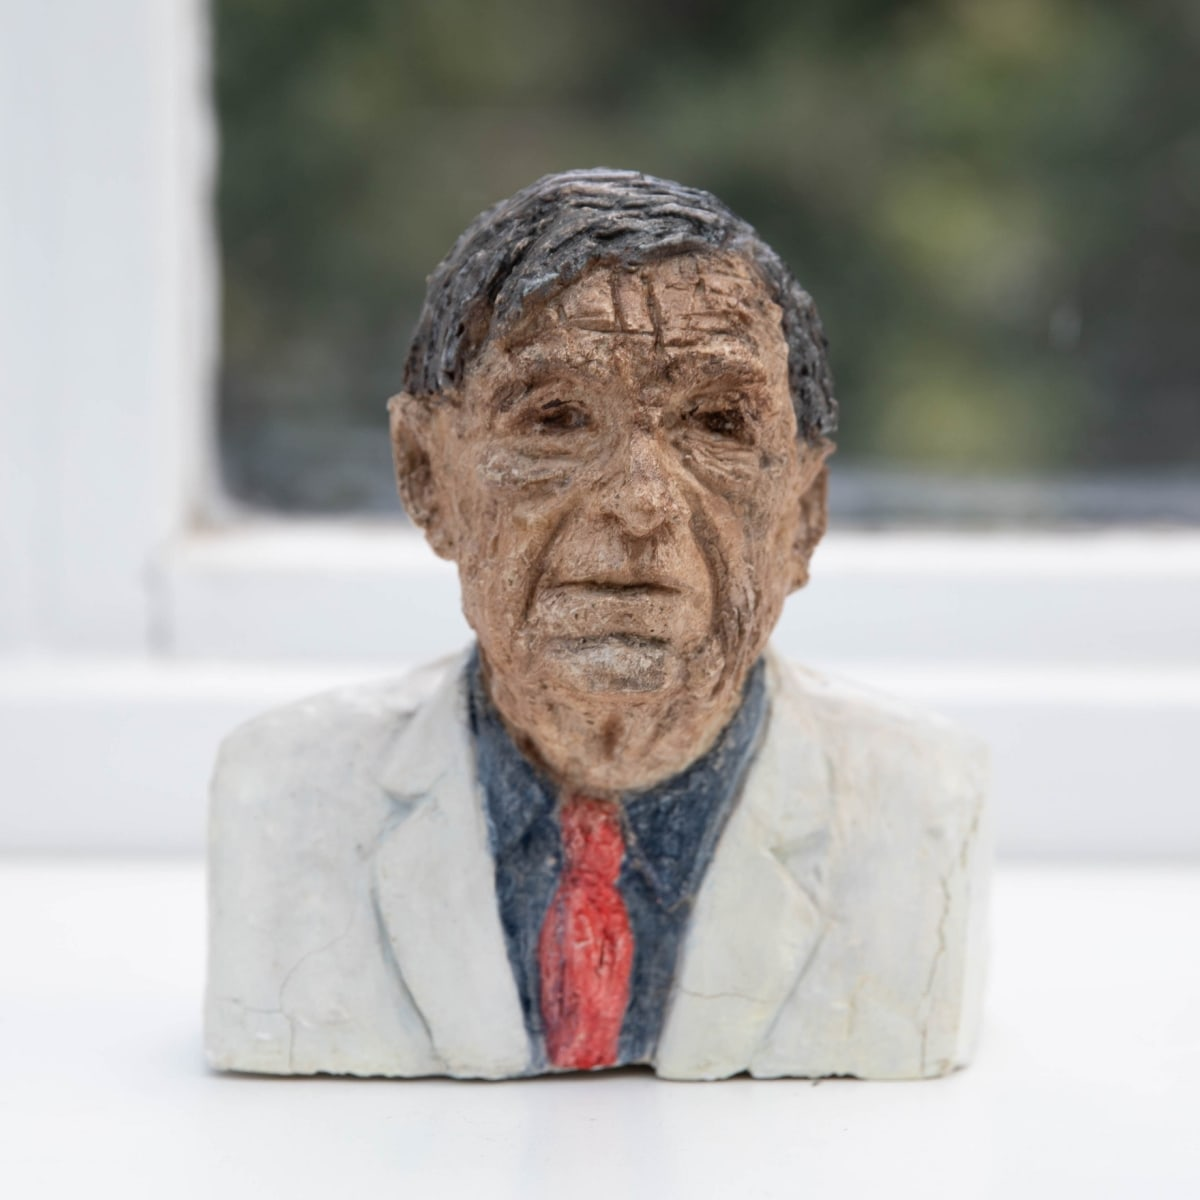 Nicole Farhi W. H. Auden ciment fondu and acrylic; hand-painted bronze casts available to purchase 18 x 15 x 7 cm edition of 7 + 3 APs